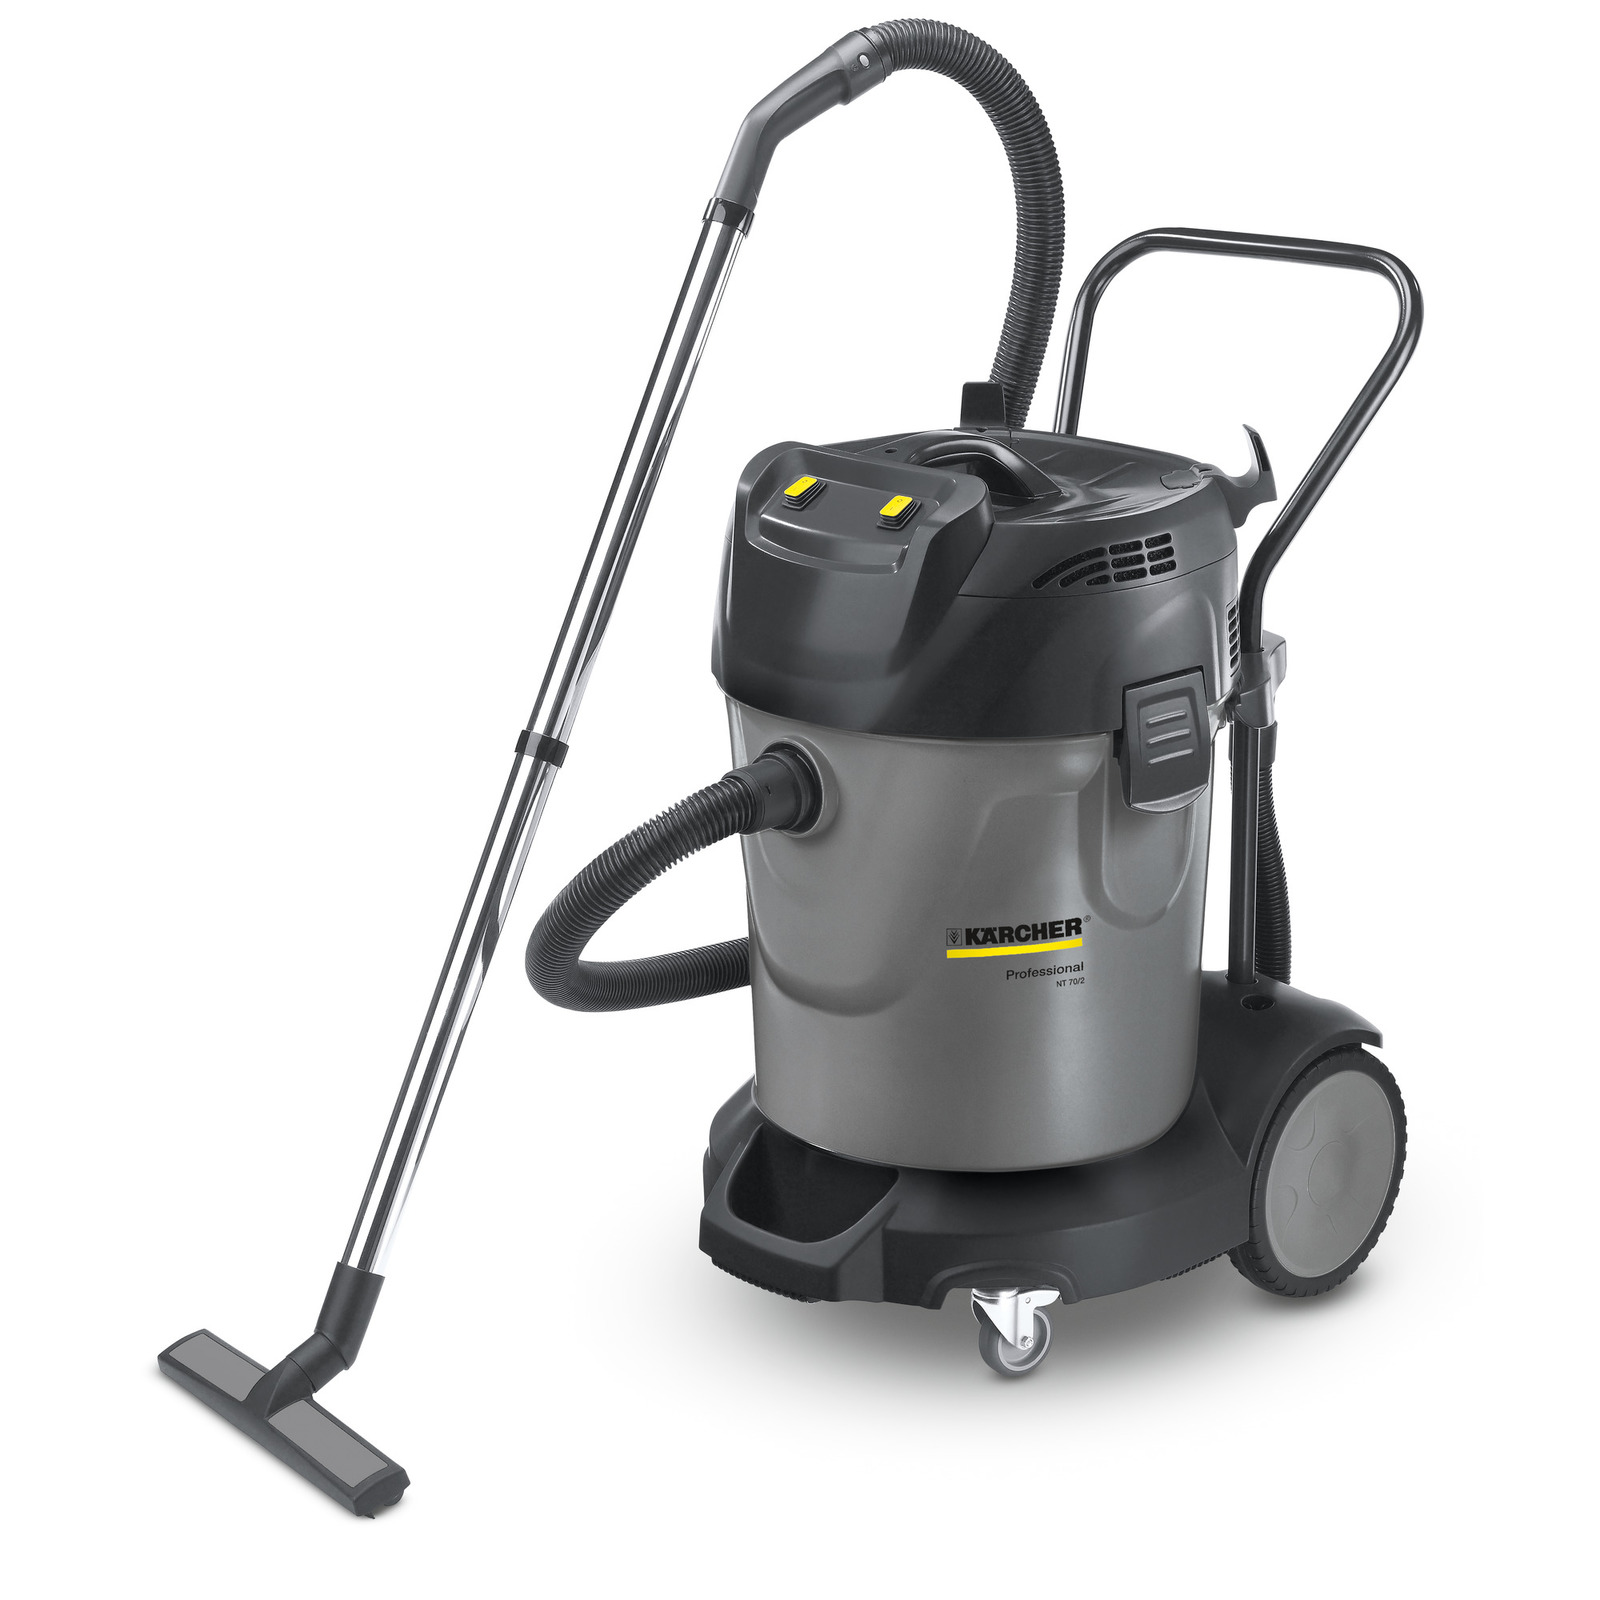 Karcher Wet And Dry Vacuum Cleaner NT 70 2